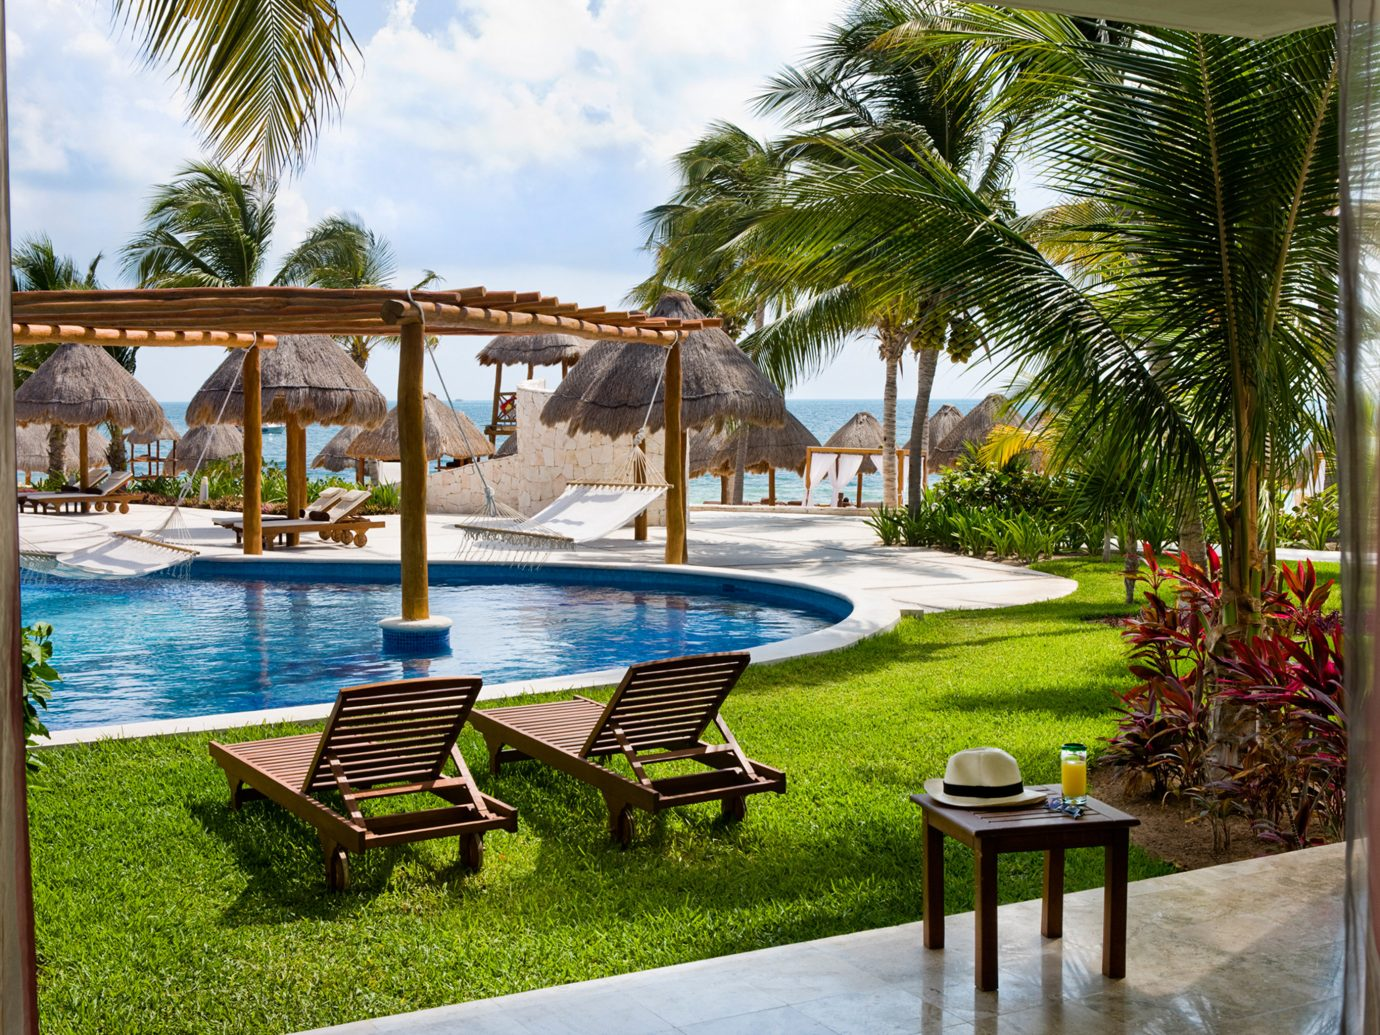 Pool at Excellence Playa Mujeres